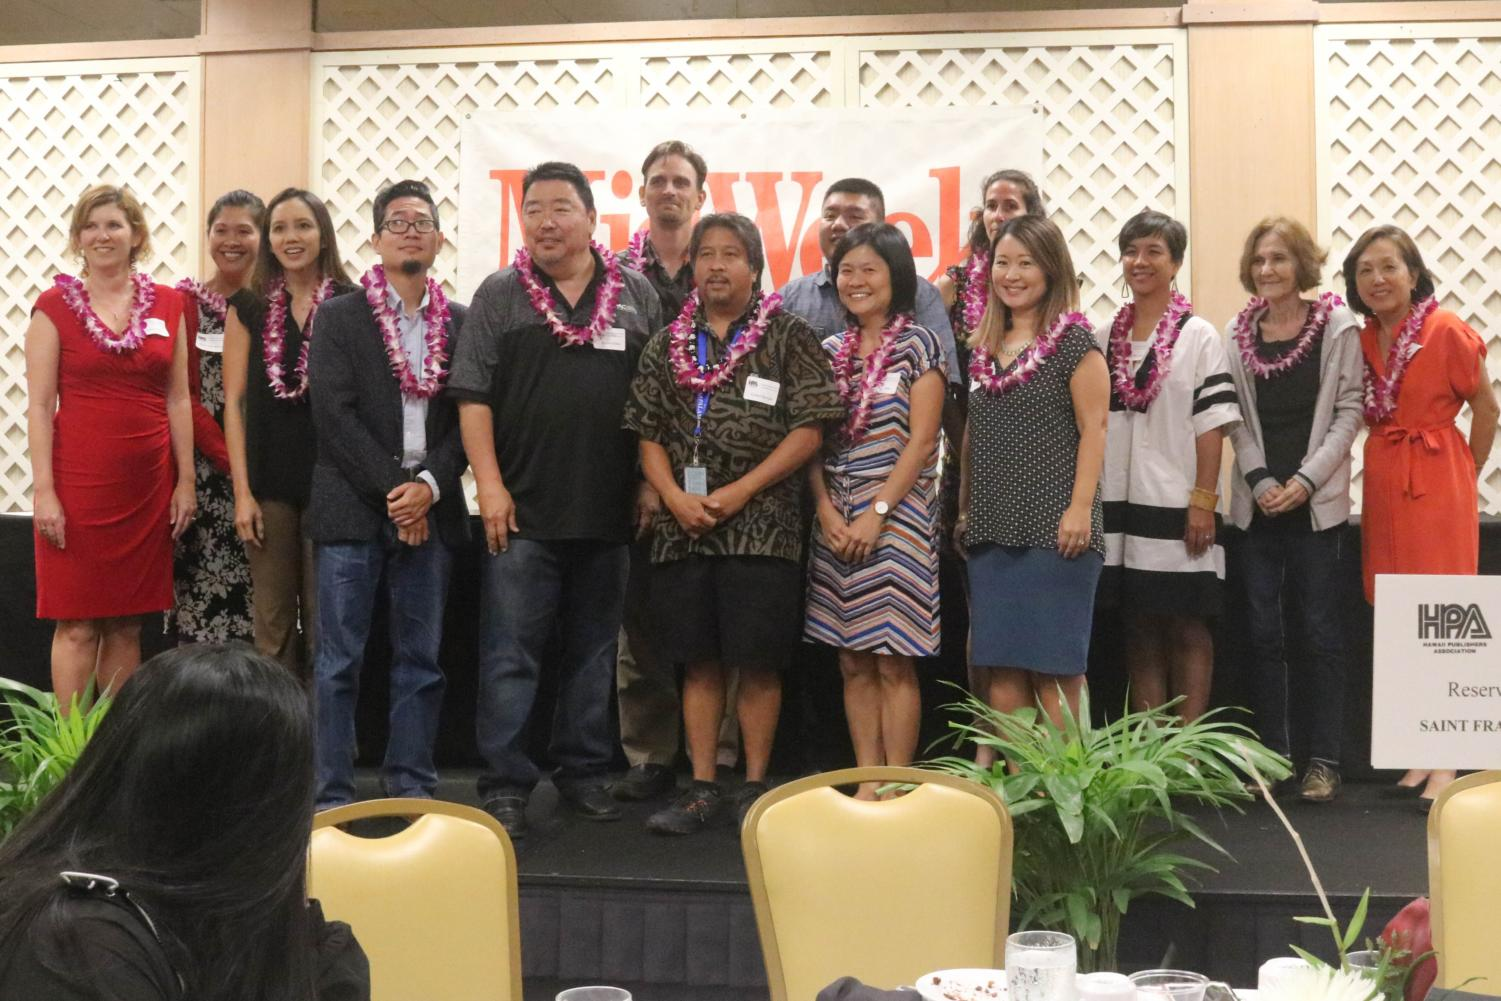 Journalism advisers were recognized at today's Hawaii High School Journalism Awards Banquet.